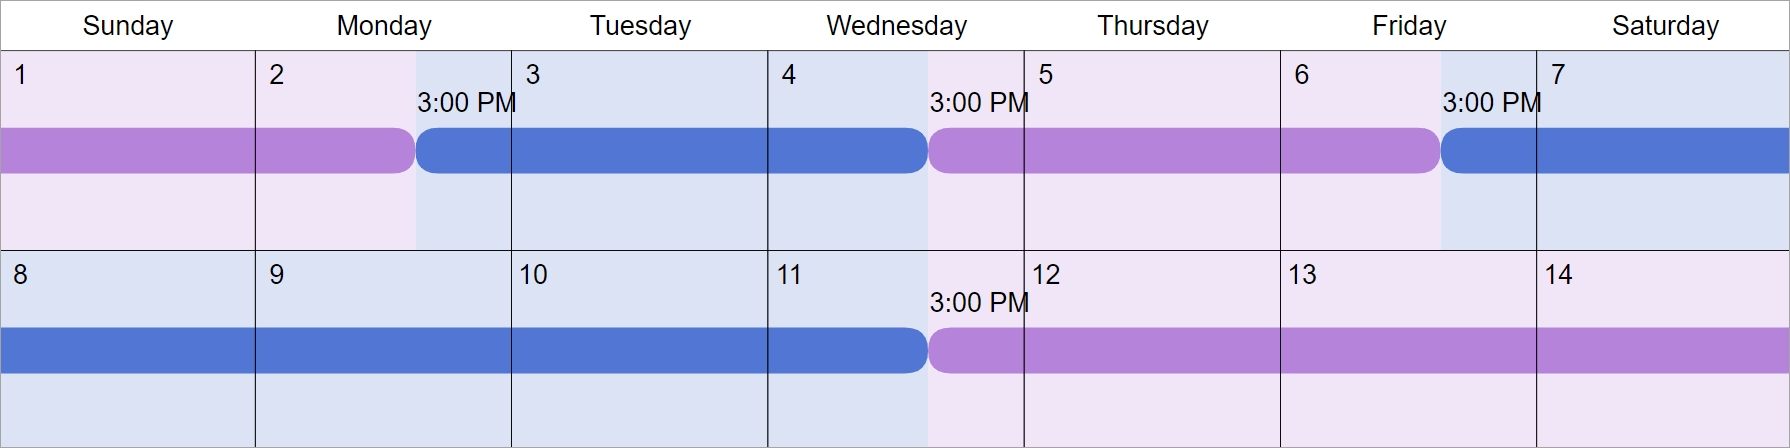 2 2 5 5 visitation schedule examples: how does it work?